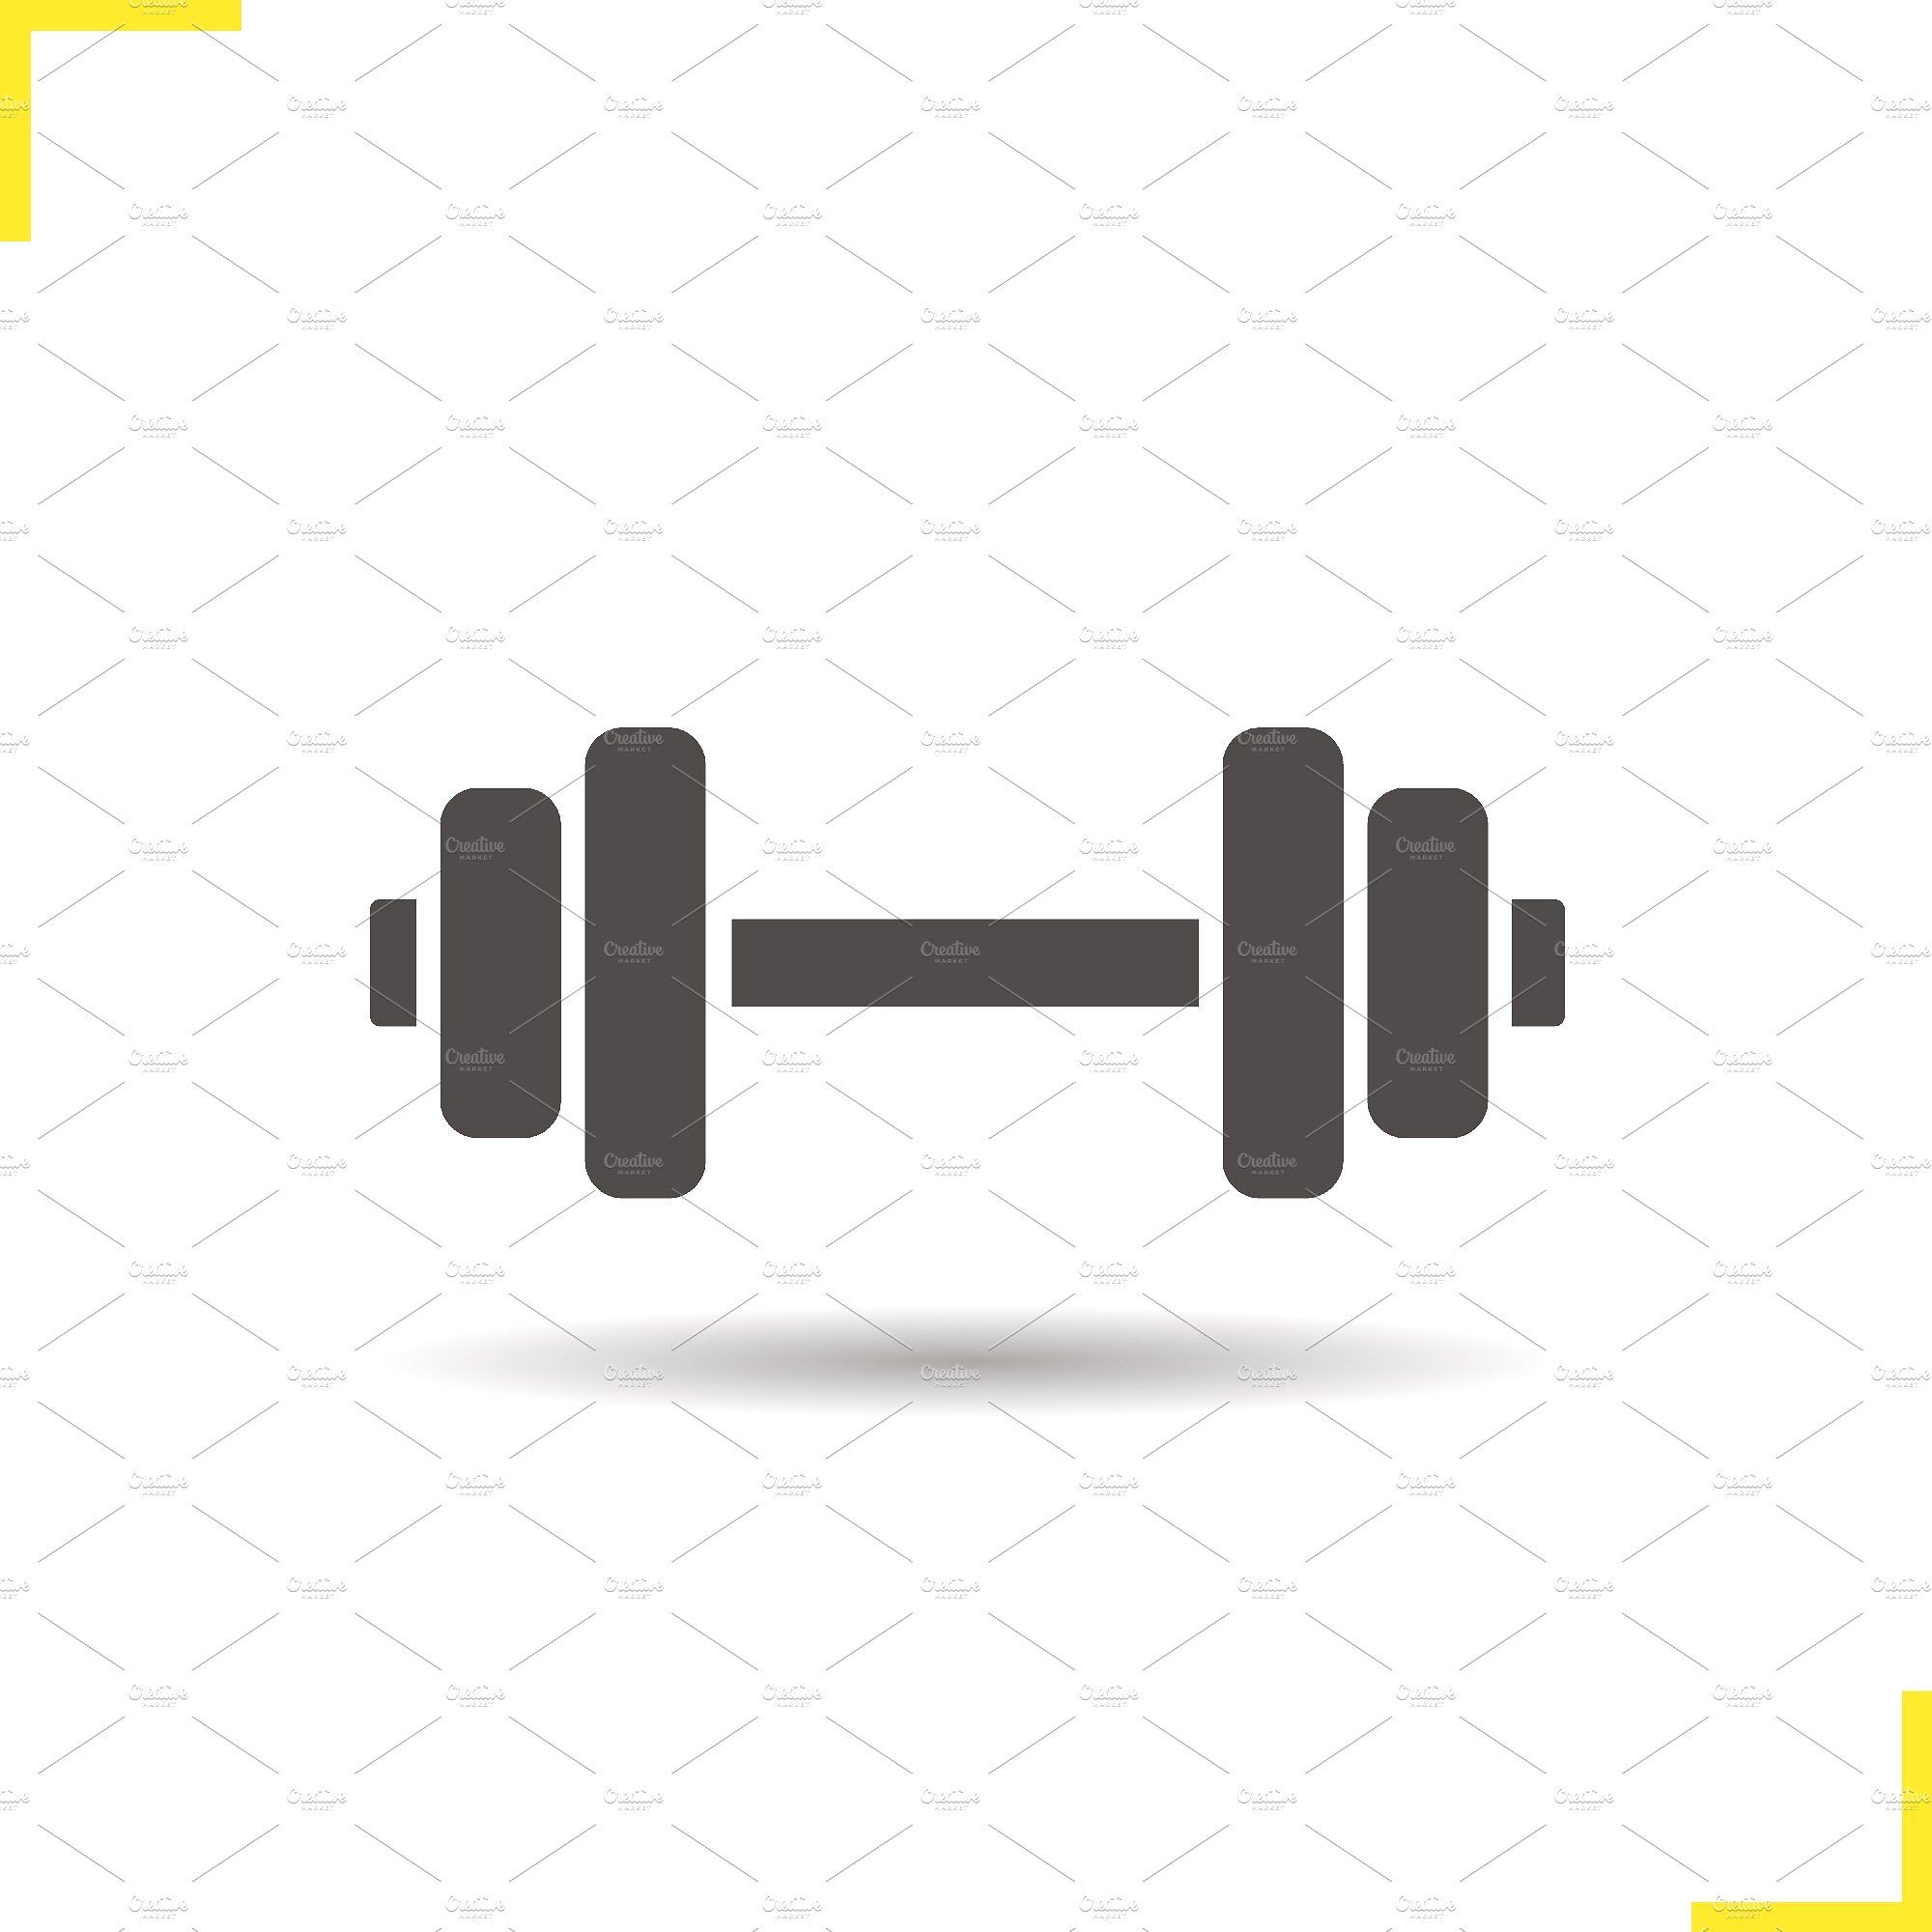 Dumbbell icon. Vector Icon, Dumbbell, Fitness icon